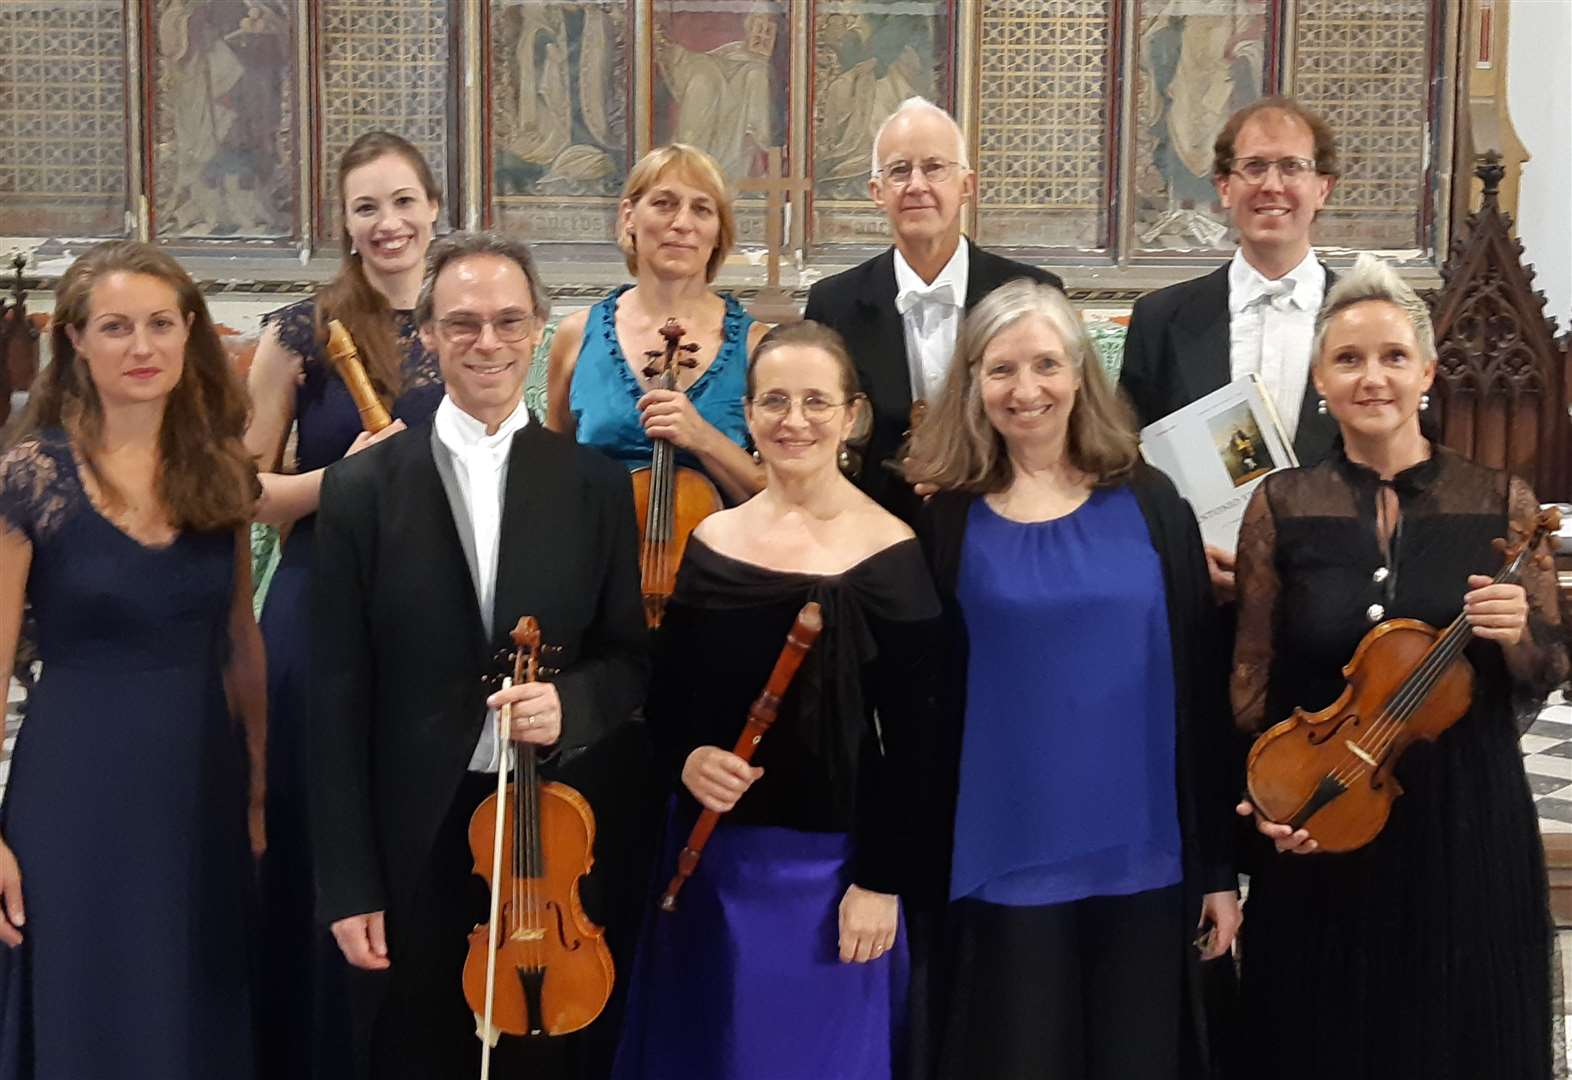 KING'S LYNN FESTIVAL: London Handel Players take galactic musical step for mankind